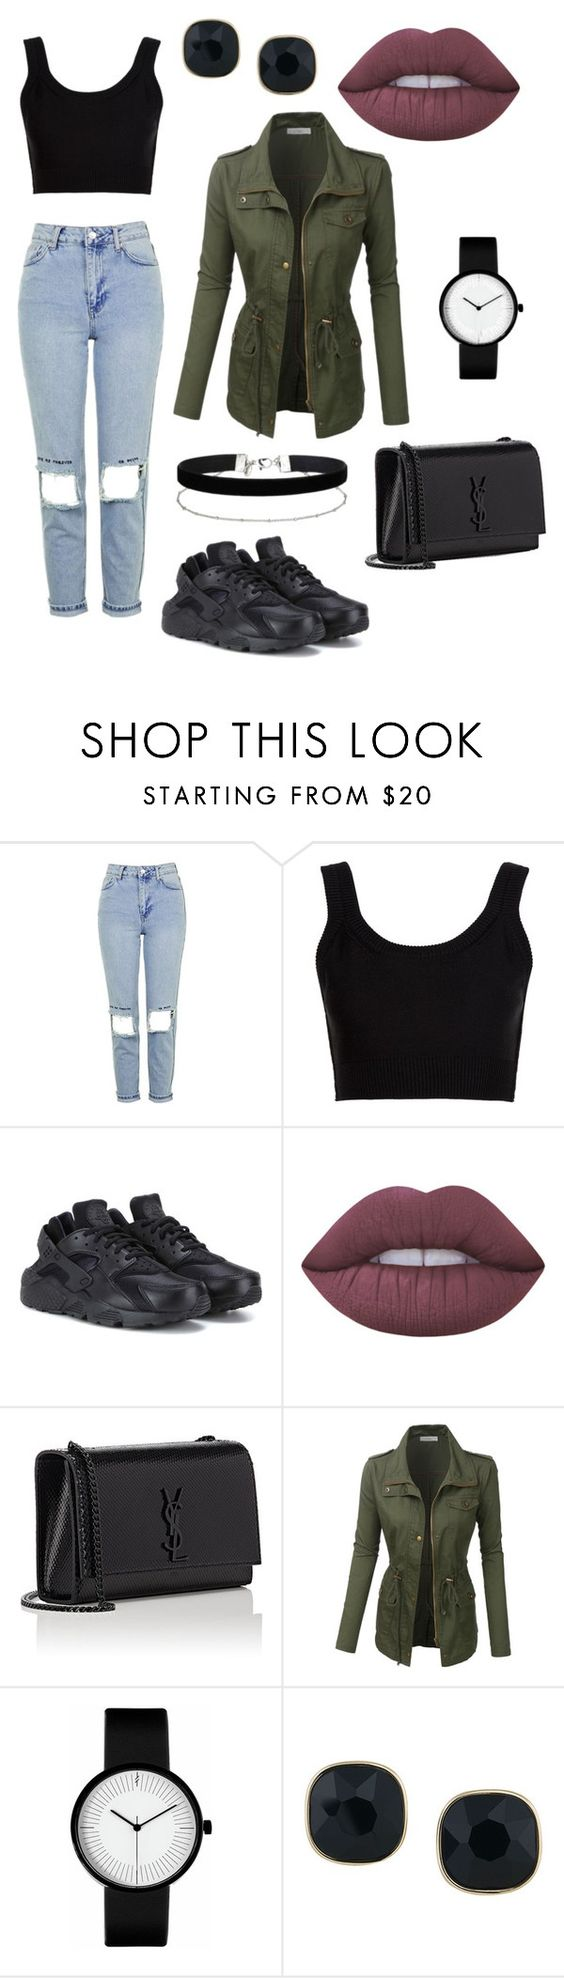 """""""❌"""" by elinevanhoutx ❤ liked on Polyvore featuring Topshop, Calvin Klein Collection, NIKE, Lime Crime, Yves Saint Laurent, LE3NO, ABS by Allen Schwartz and Miss Selfridge"""